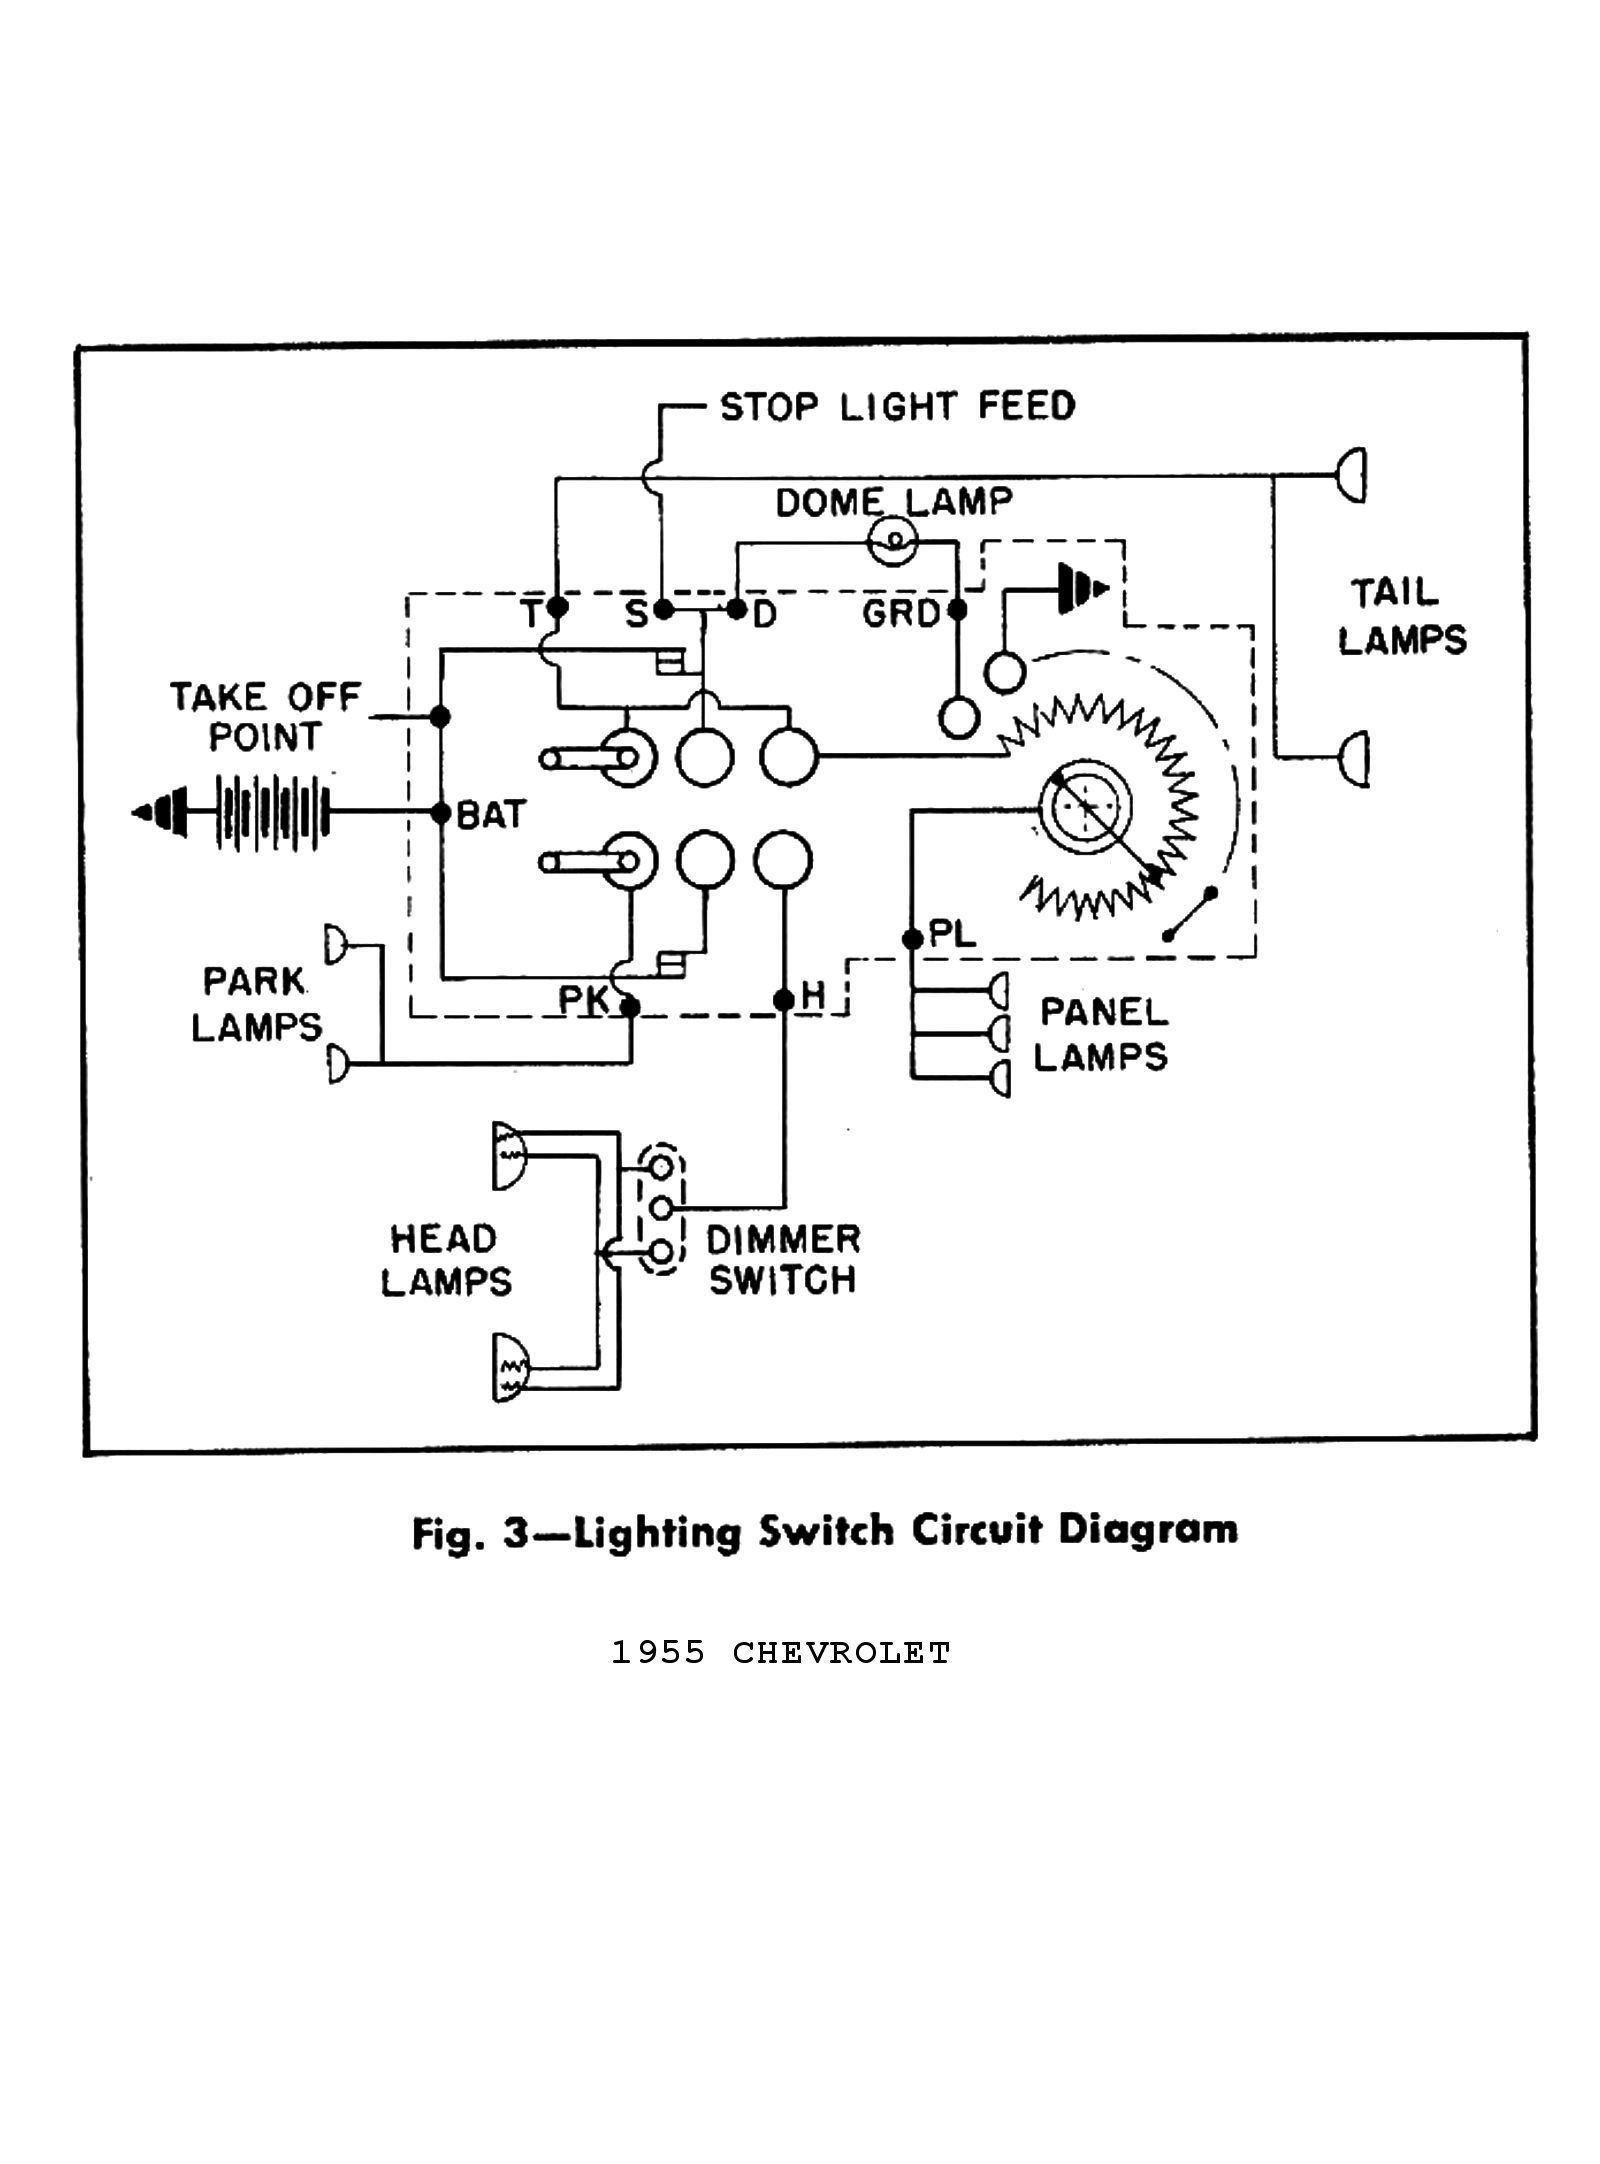 medium resolution of 66 chevy headlight switch wiring diagram wiring diagram view 63 chevy truck headlight switch wiring